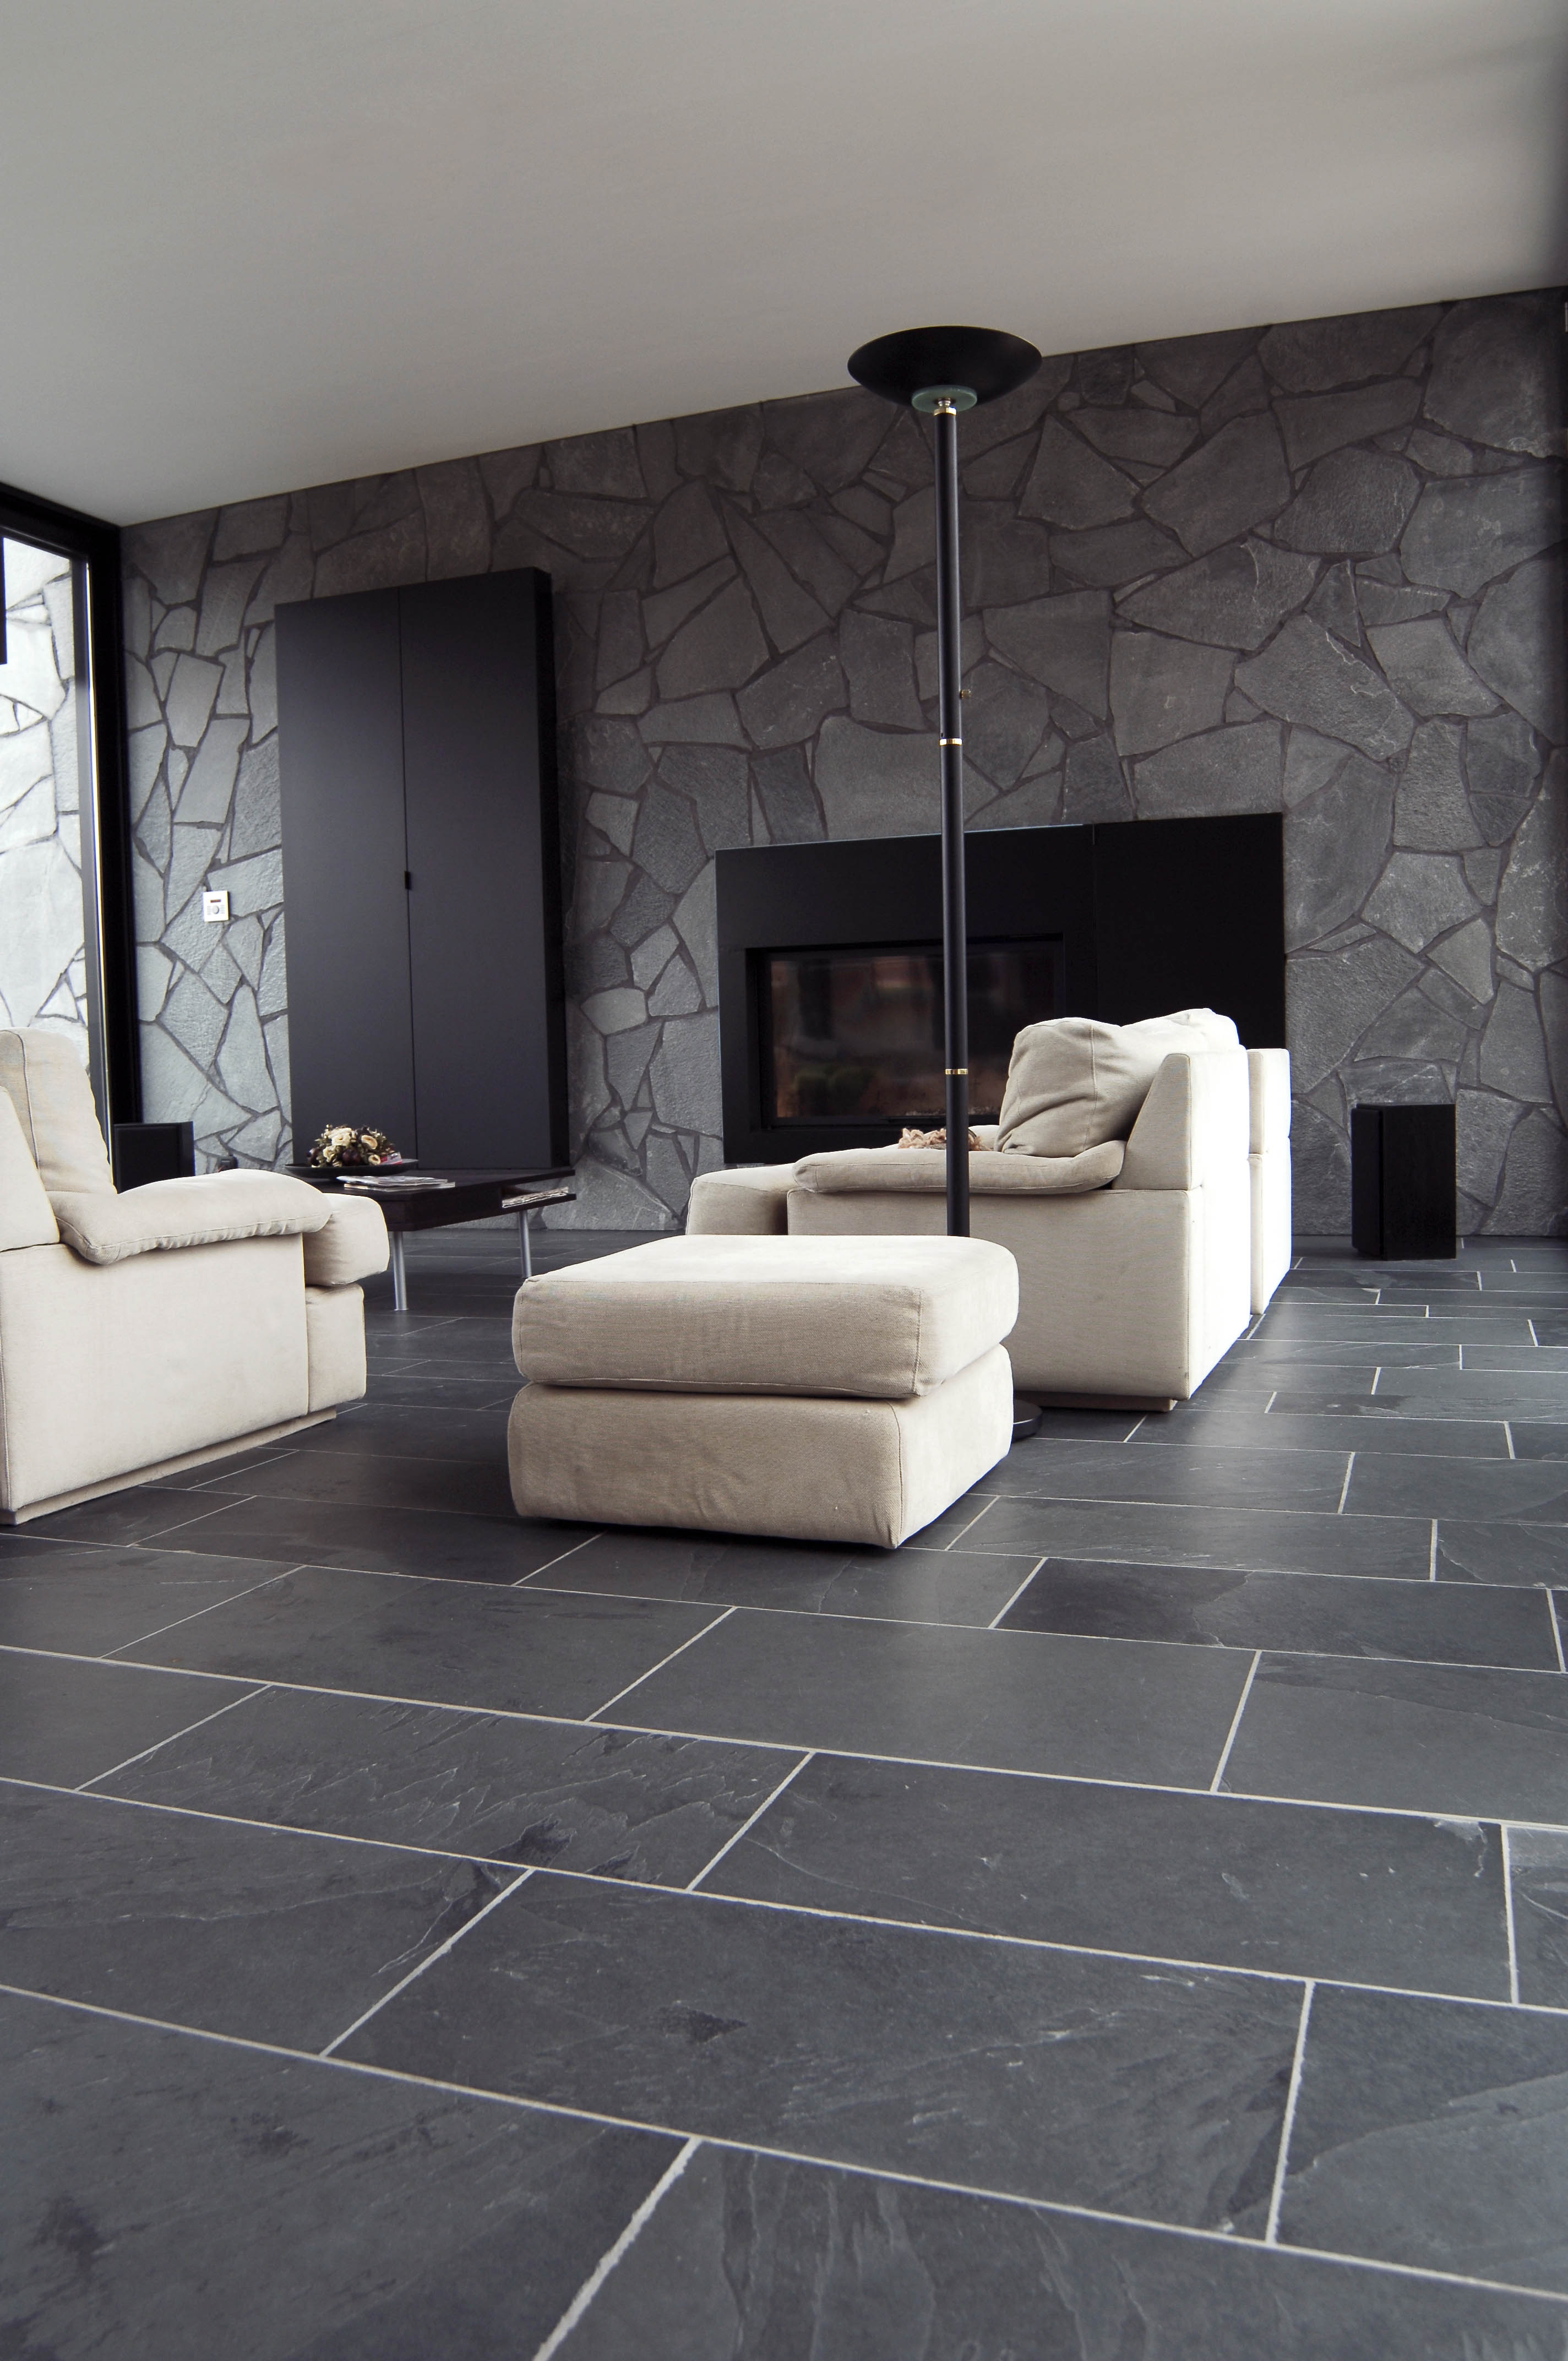 South american graphite slate tiles for sale at rms traders south american graphite slate dailygadgetfo Images